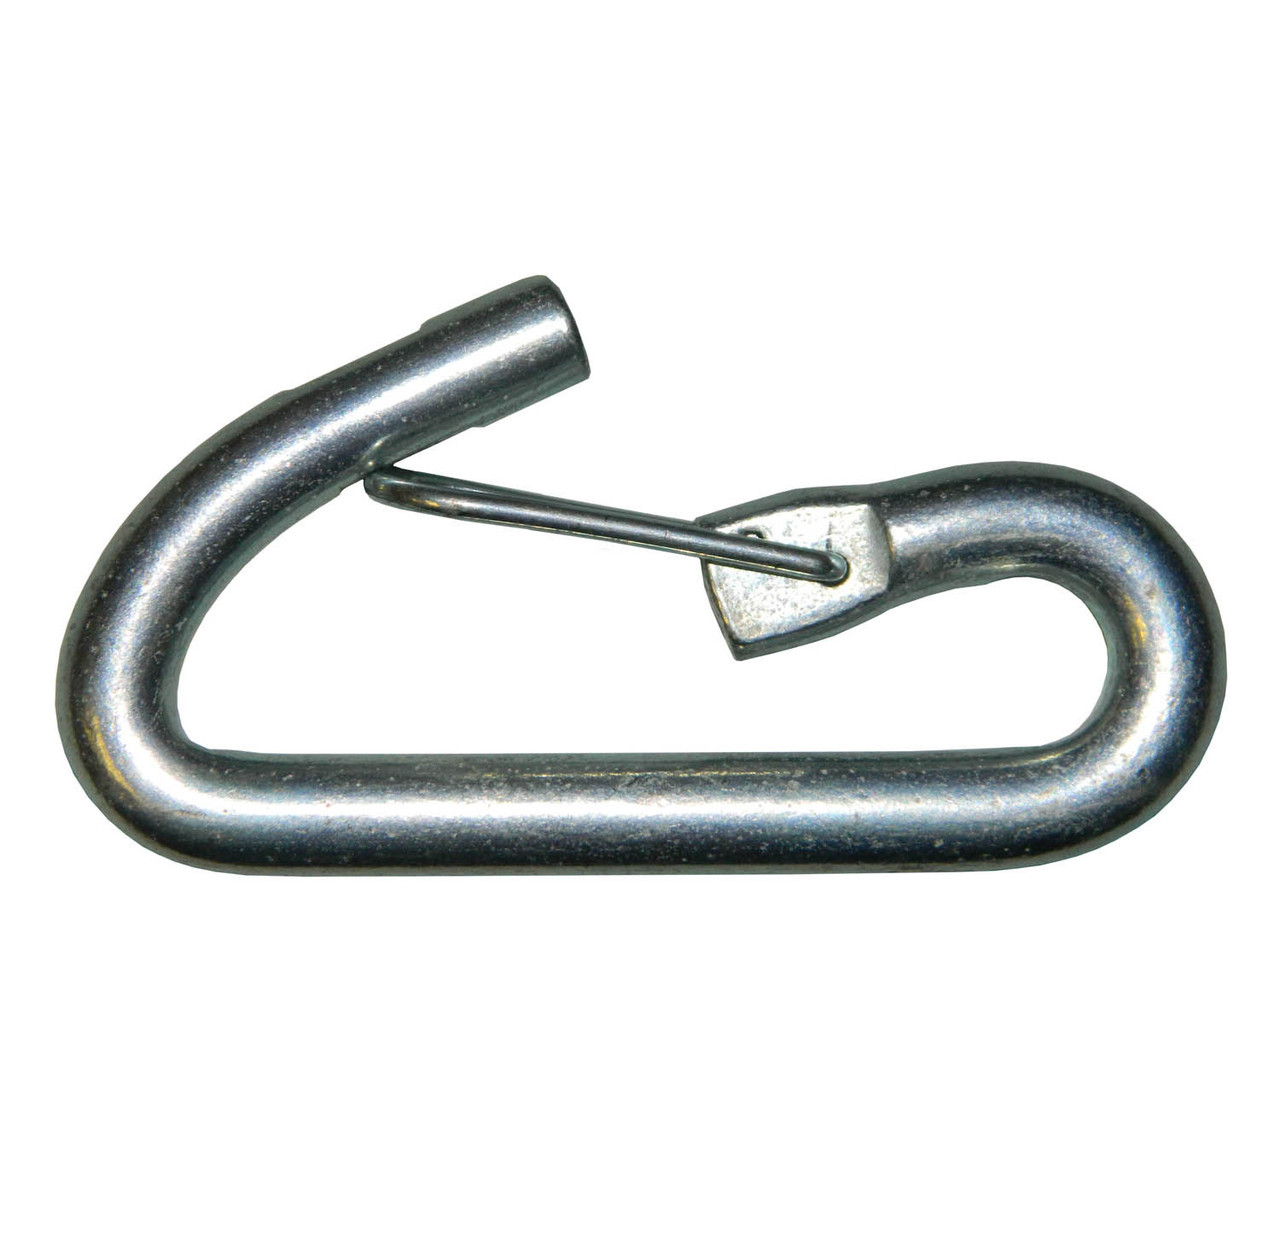 "H1732L --- Hook with Latch  - 17/32"" Diameter"